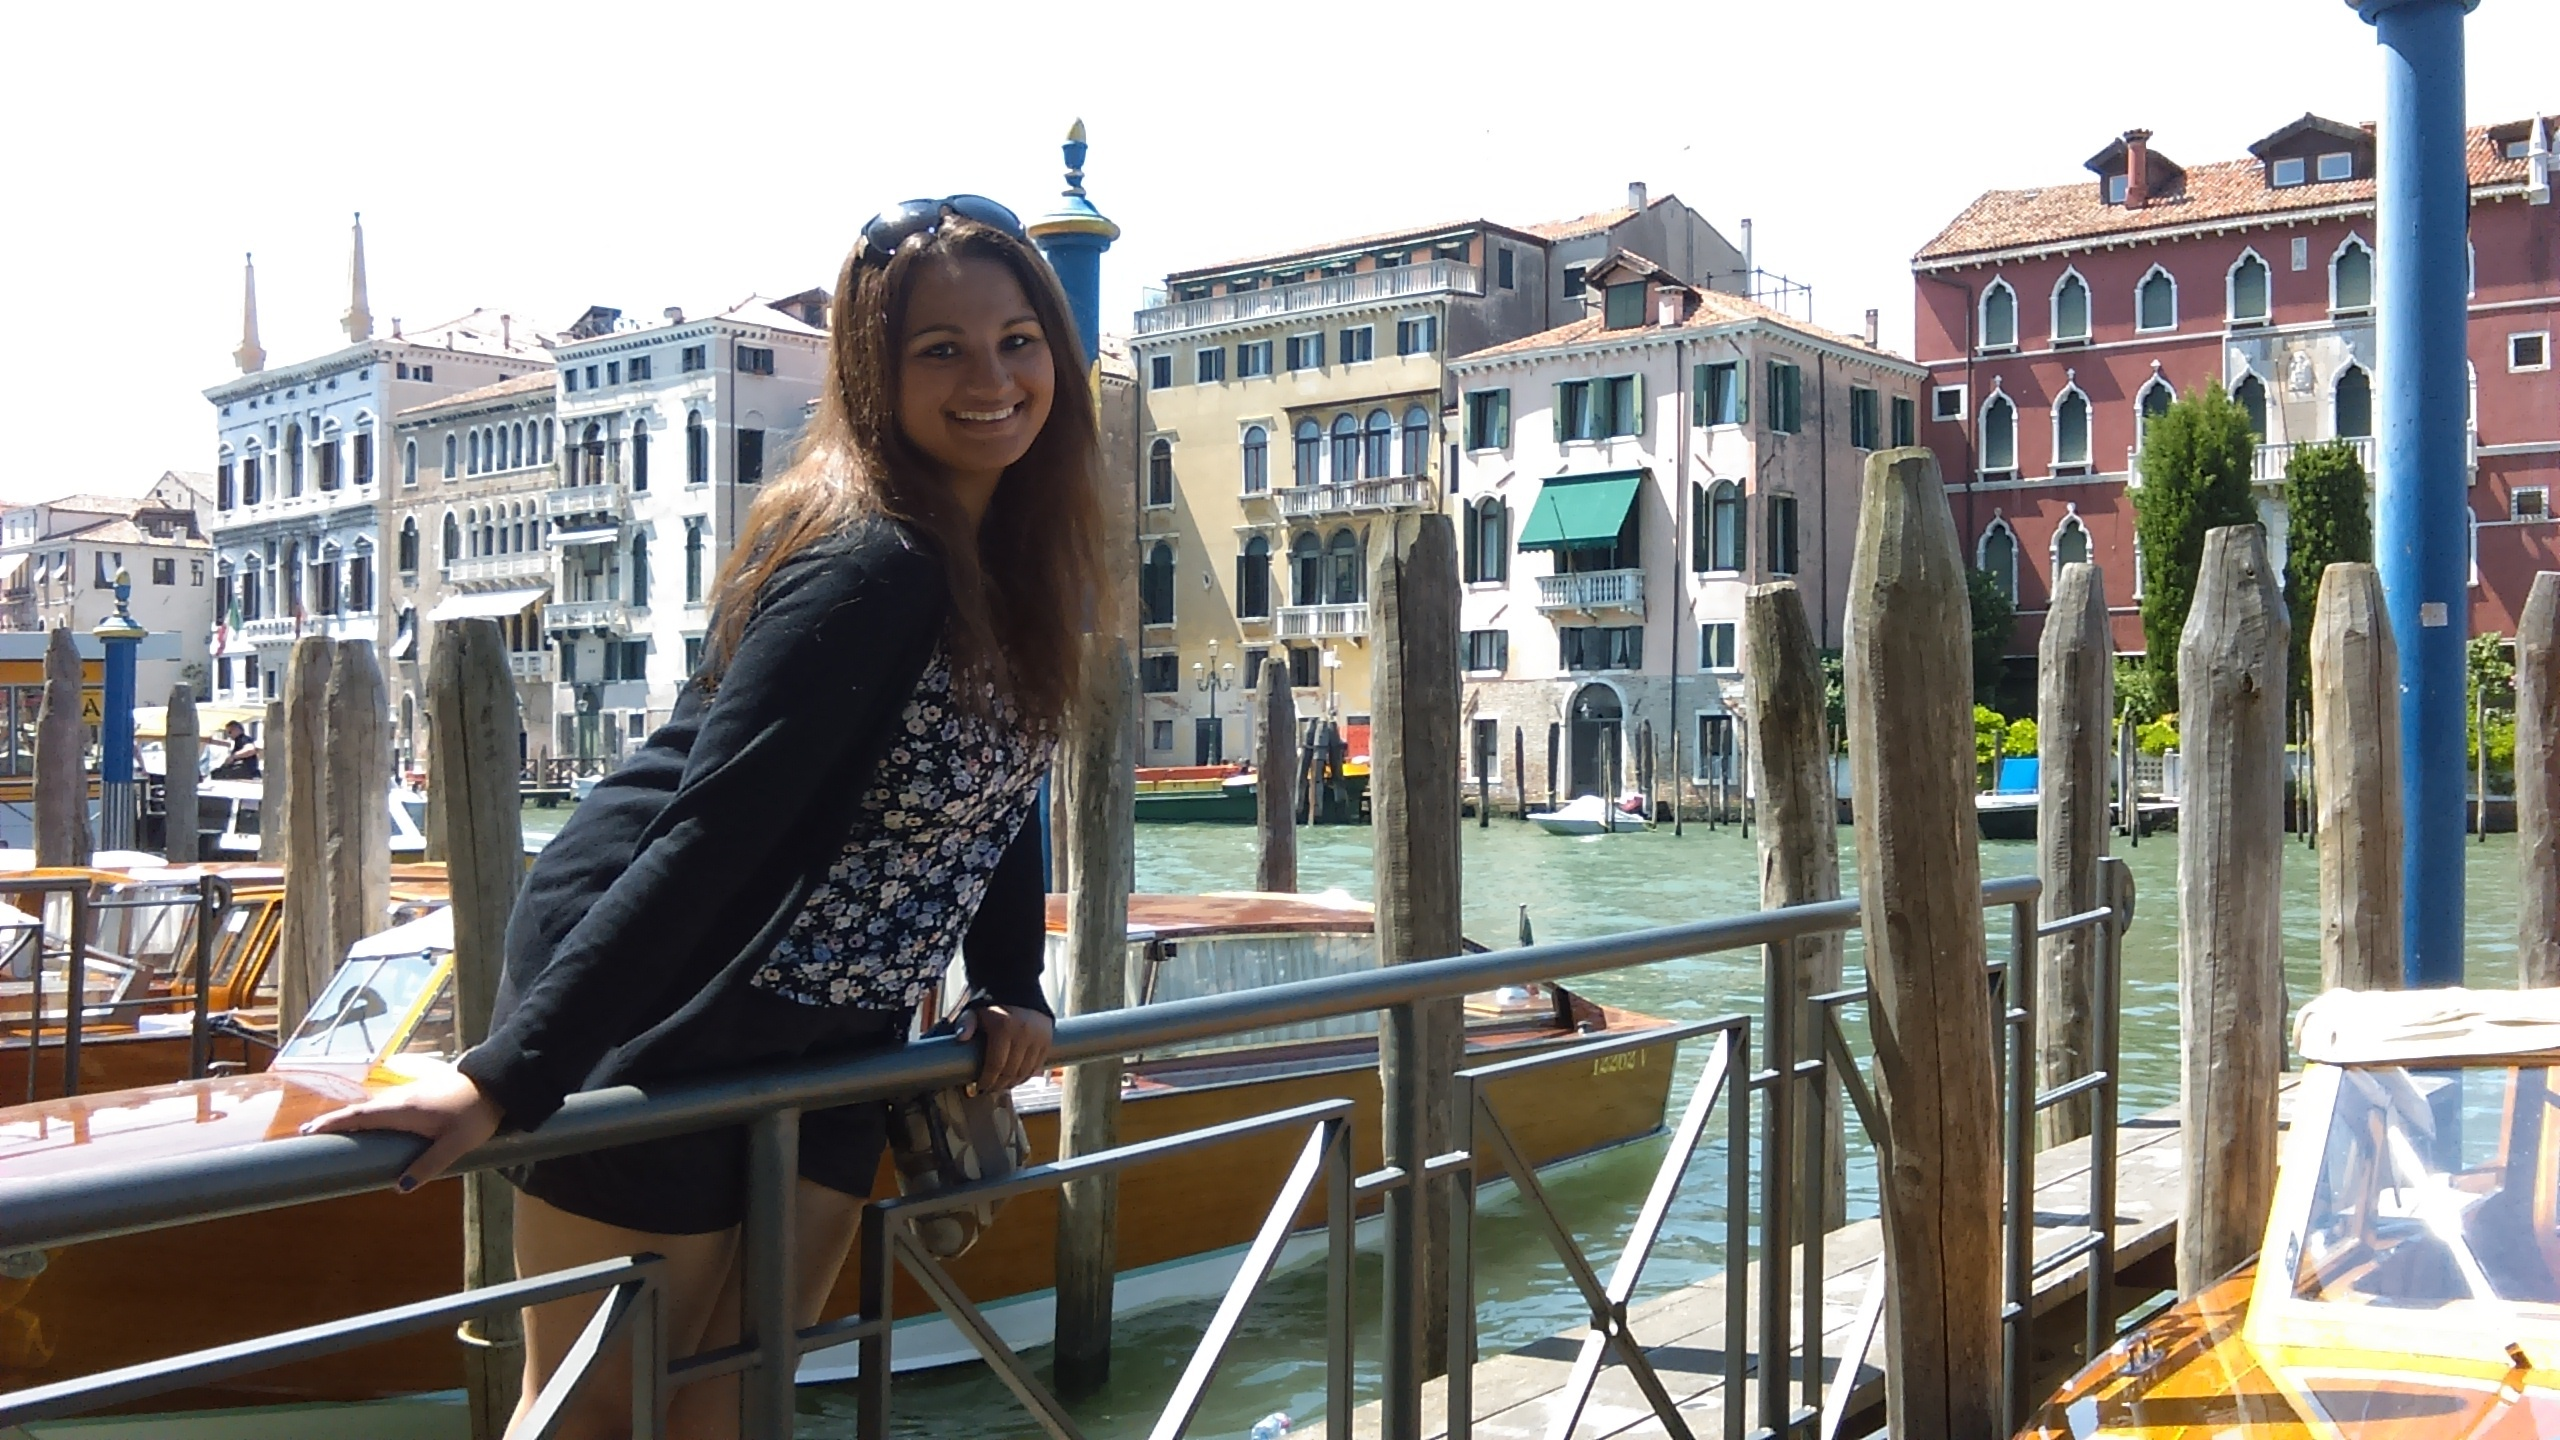 CAPAStudyAbroad_London_Summer2015_From_Roshni_Patel_-_venice